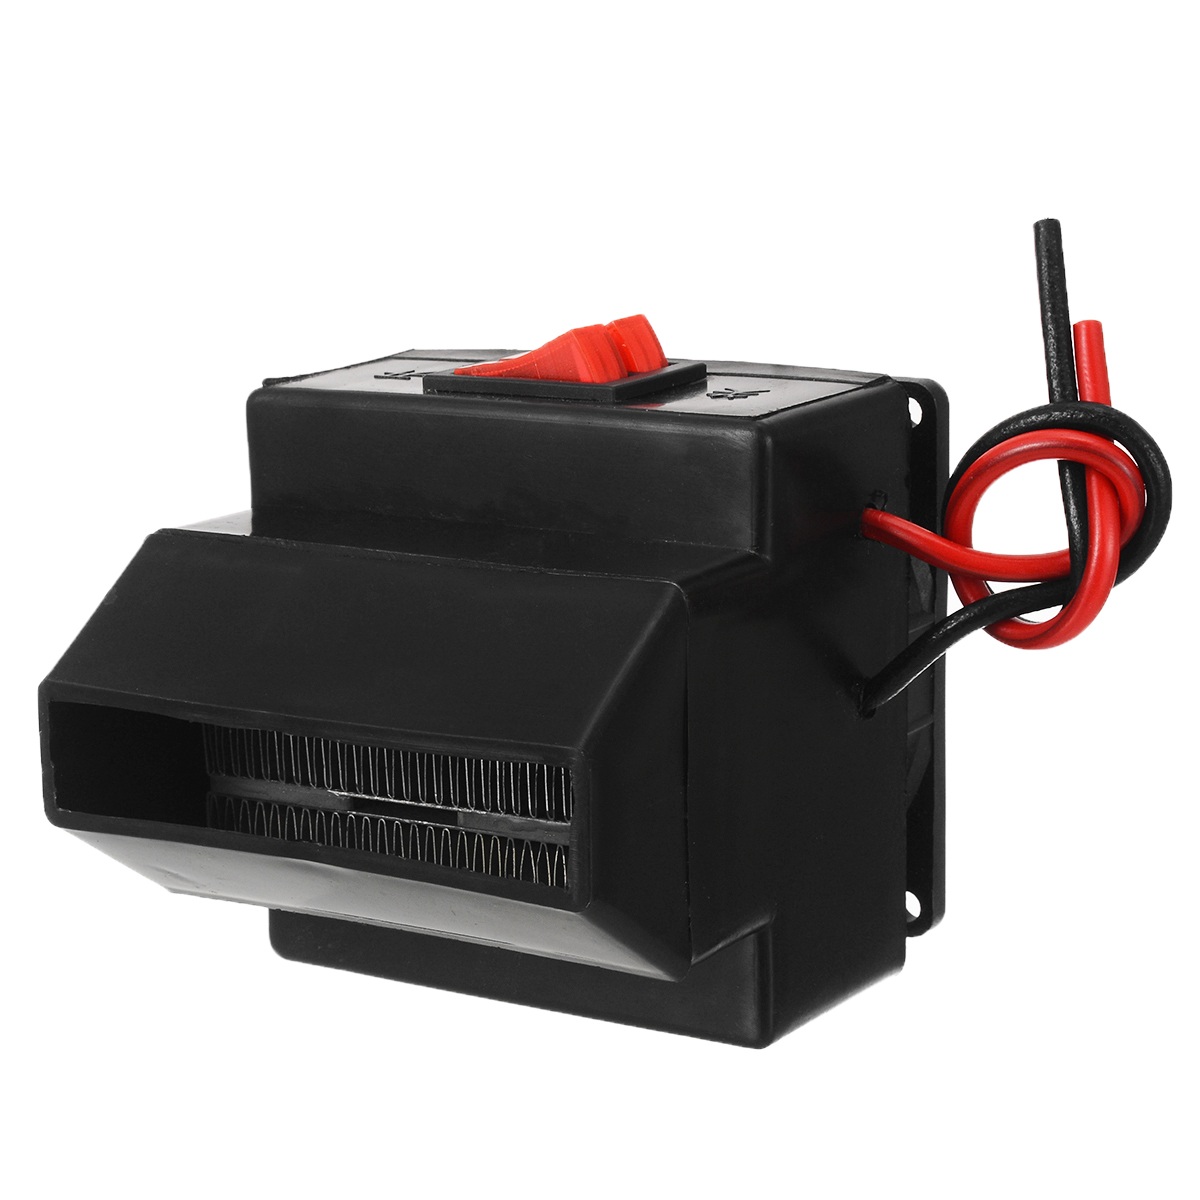 12V 300W Universal Portable Car Heater Auto Heating Air Heater Compact Defroster Demister Car Electrical Appliances